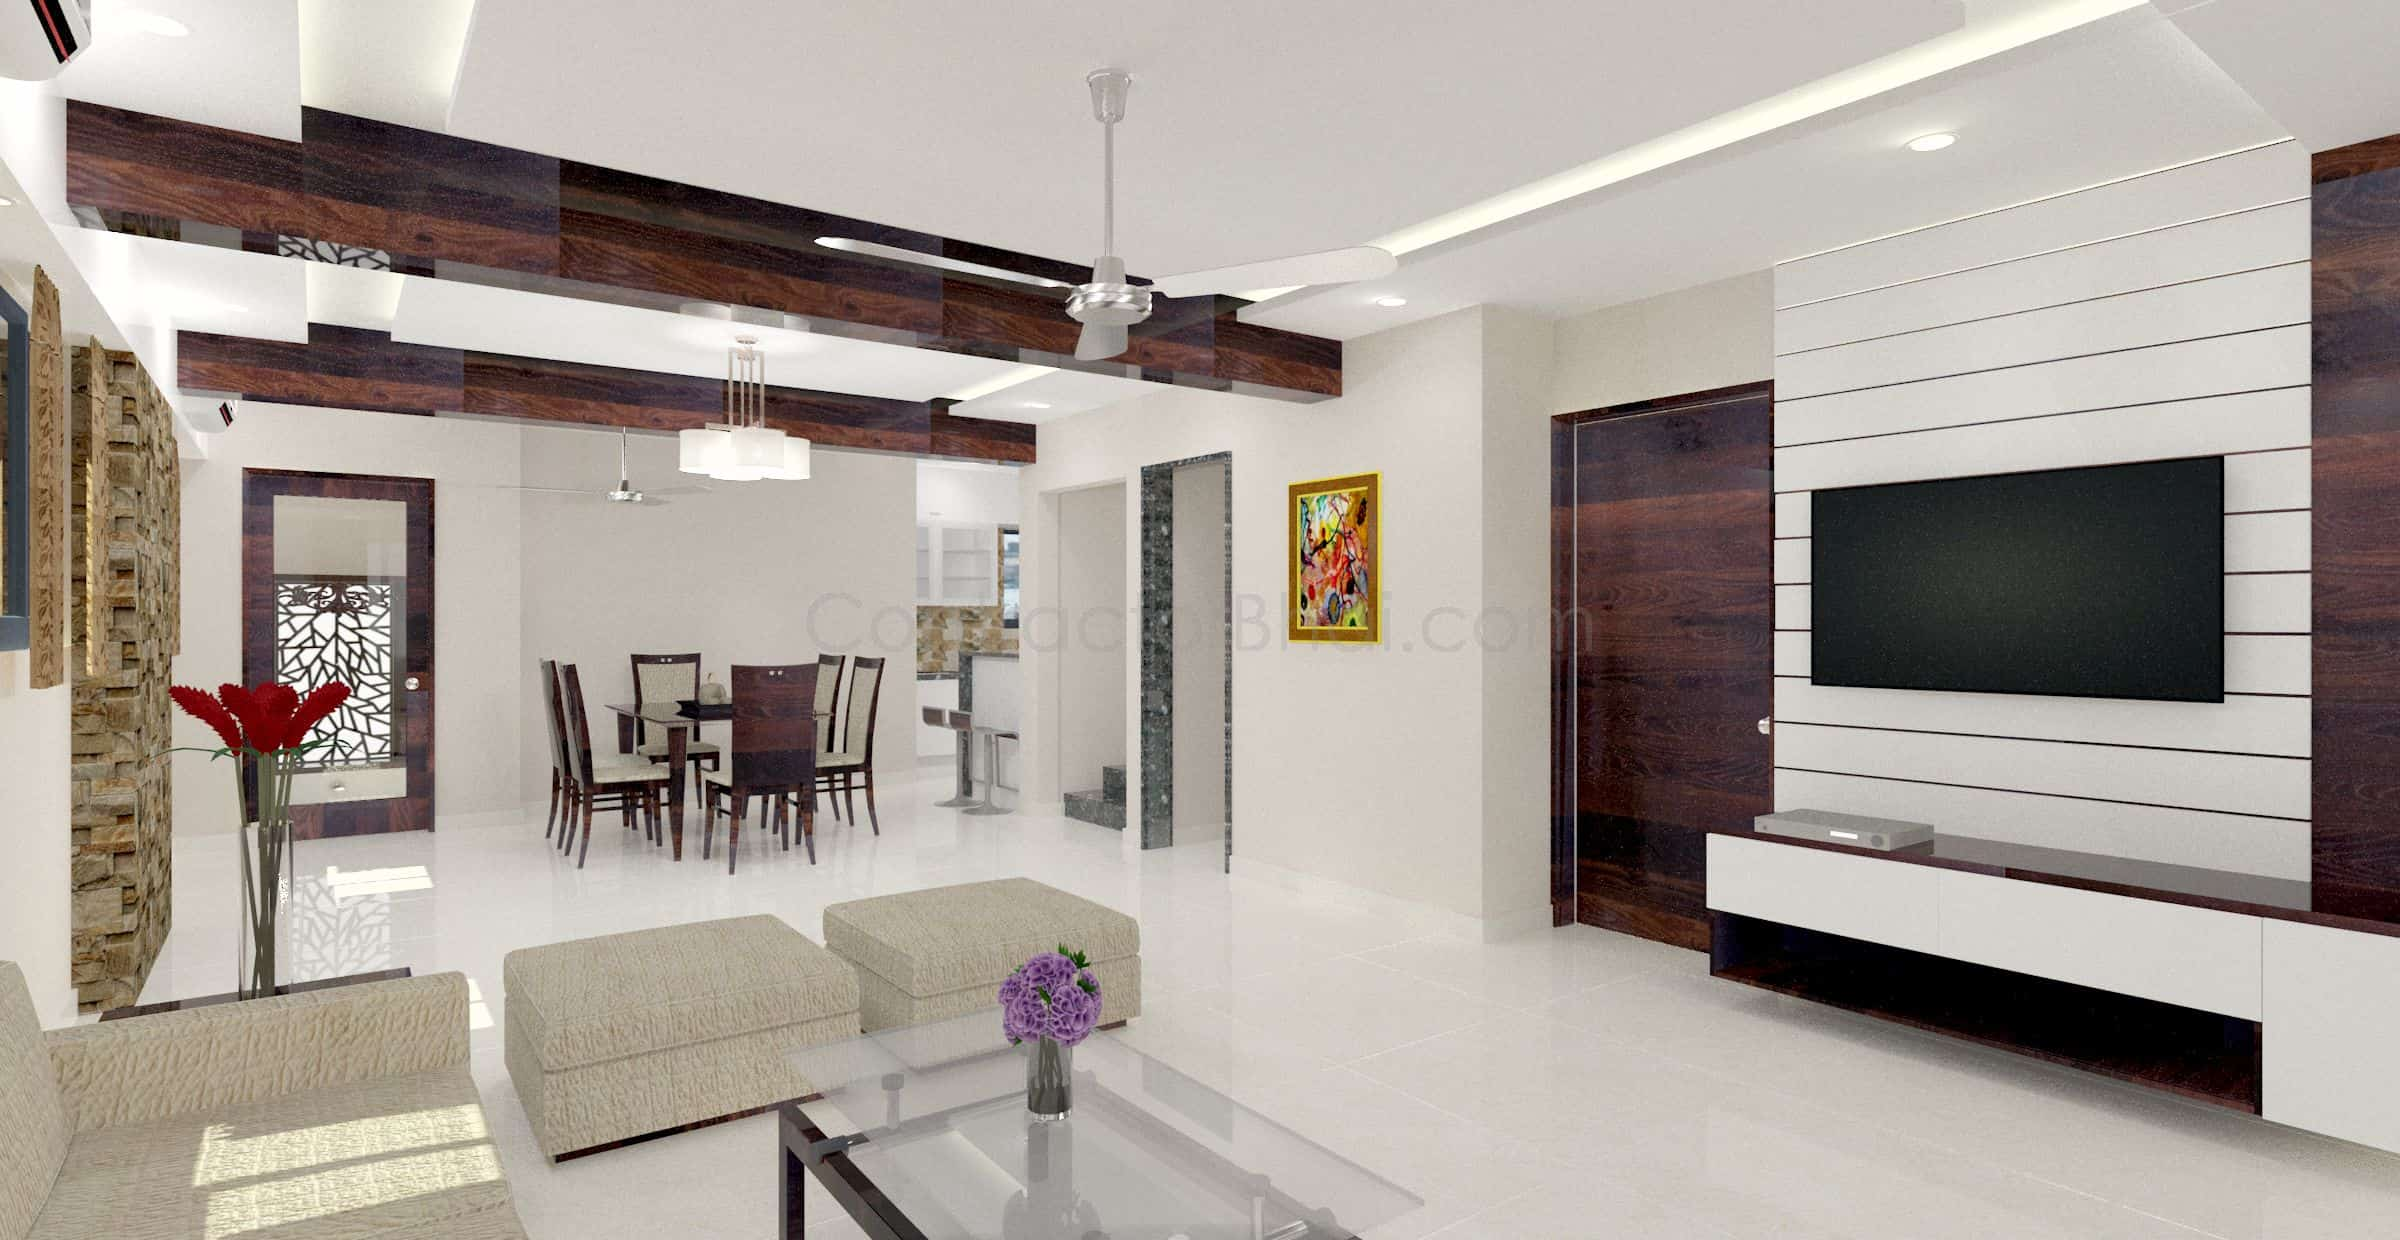 3d interior design service for indian homes contractorbhai for 3d interior designs images